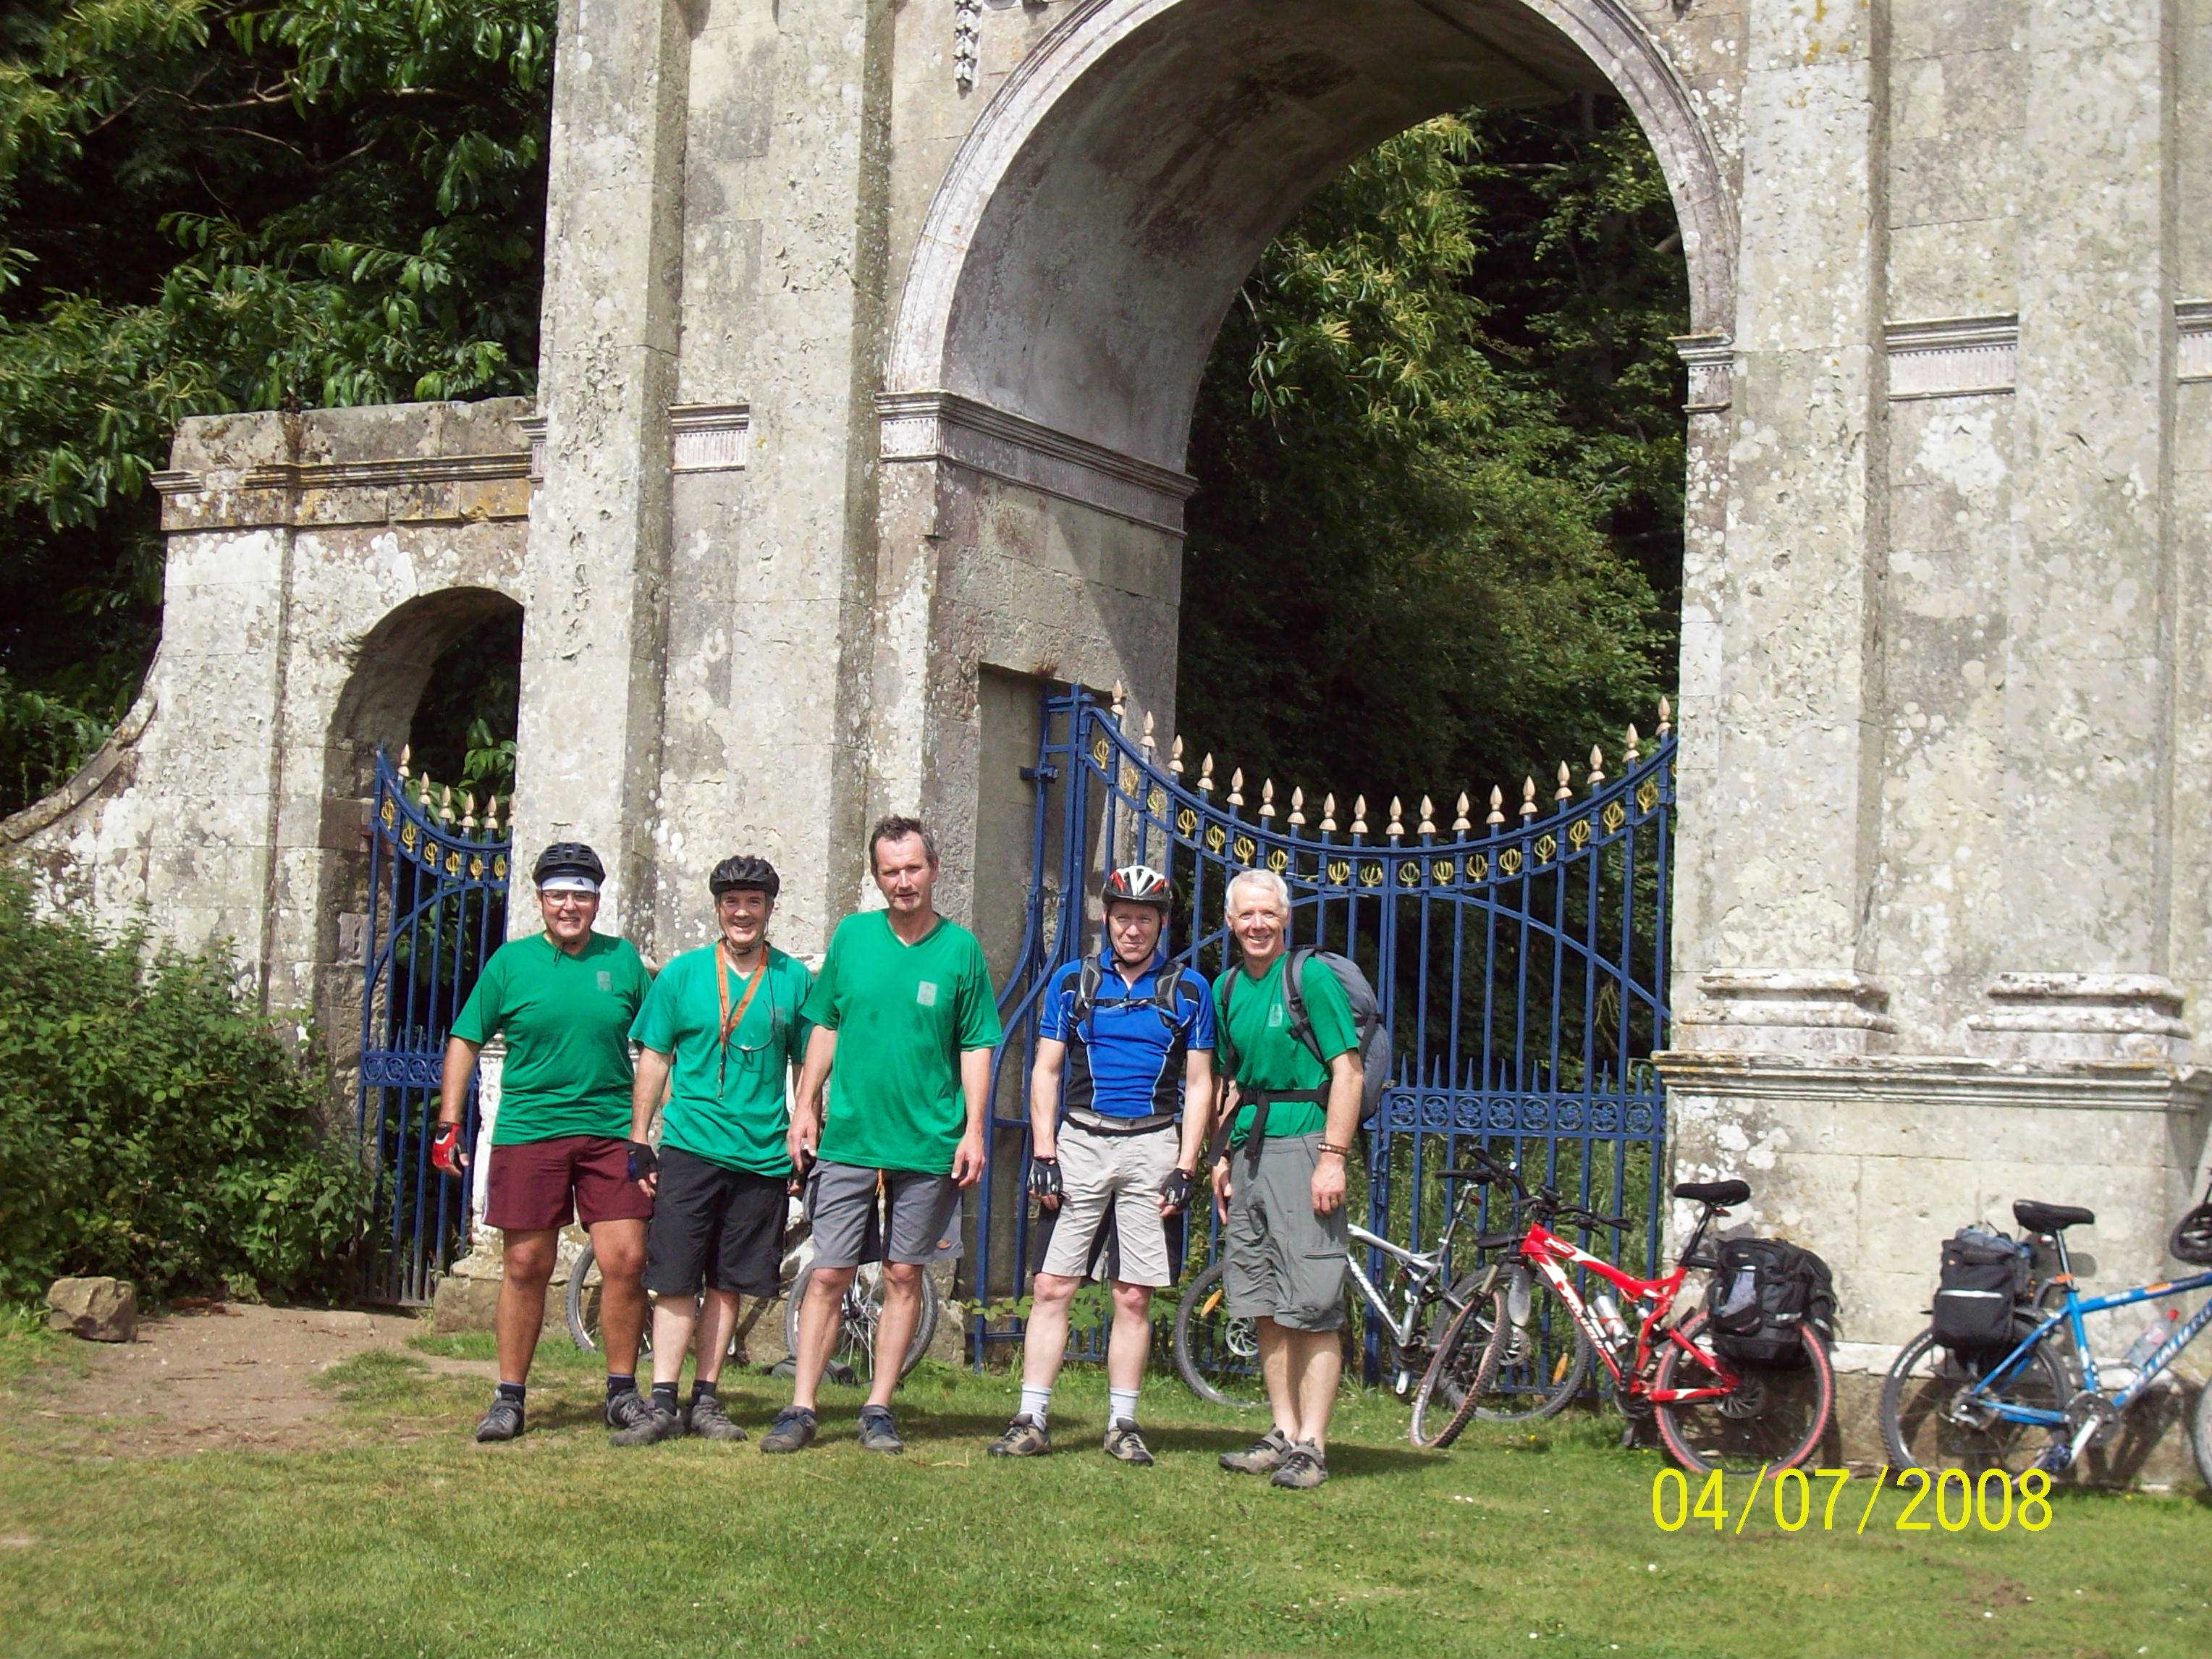 IOW ride traditional arch photo